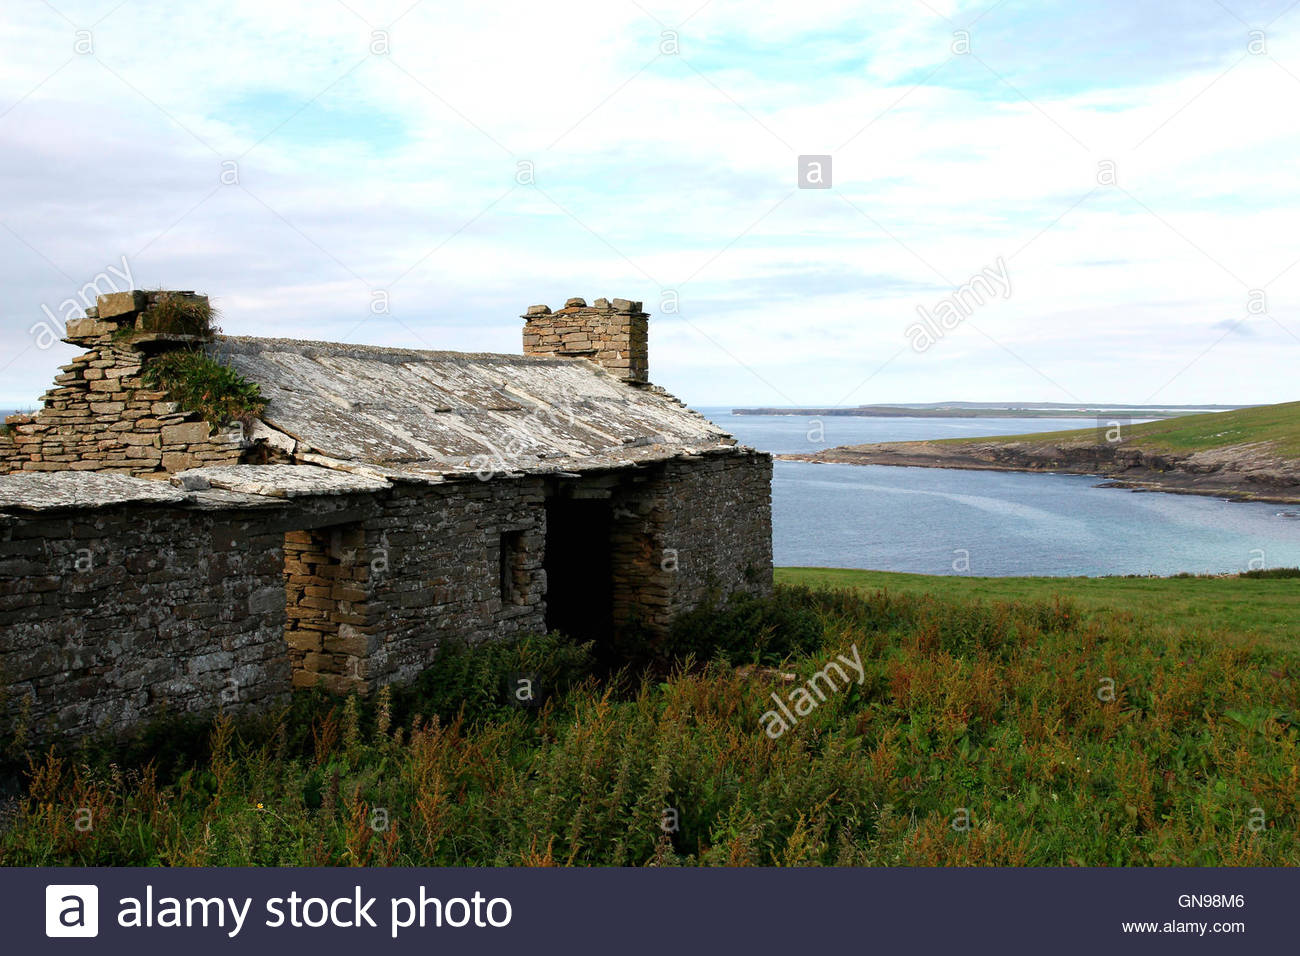 house in for stock photo cottages cottage scotland thatched england detached old english uk sale